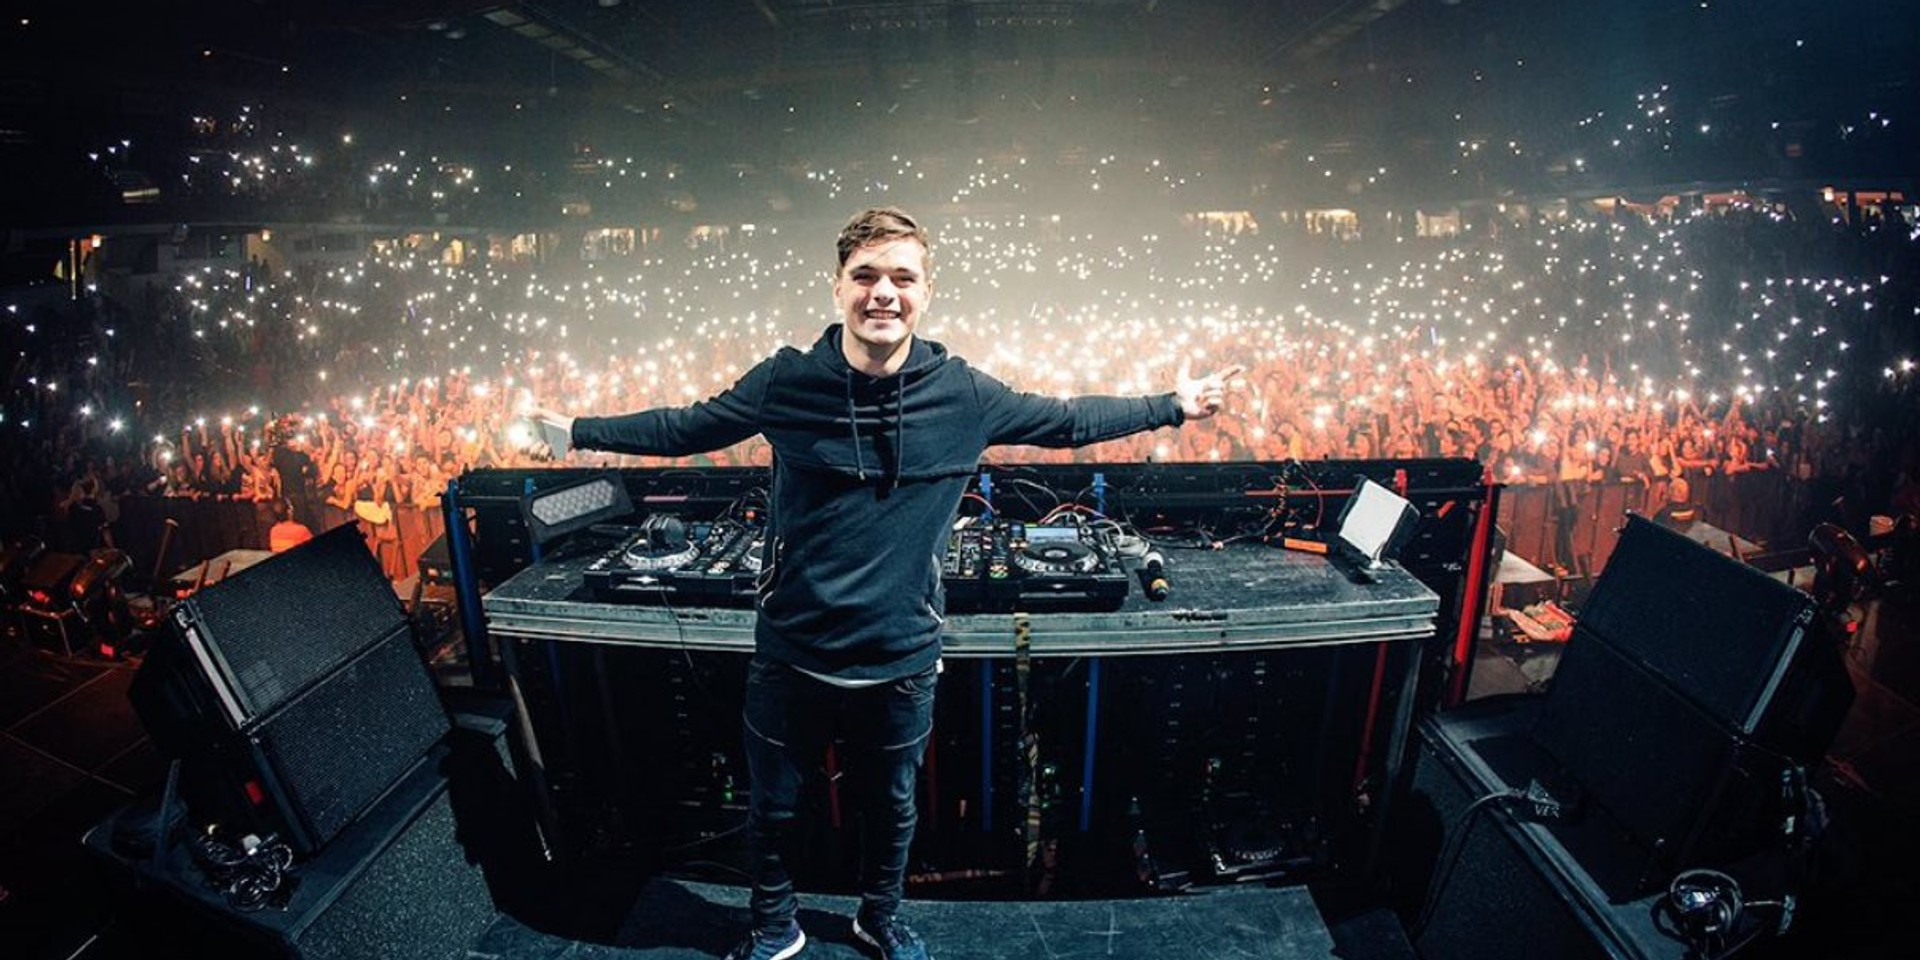 Don't Let Daddy Know returns to Thailand in 2018 with Martin Garrix